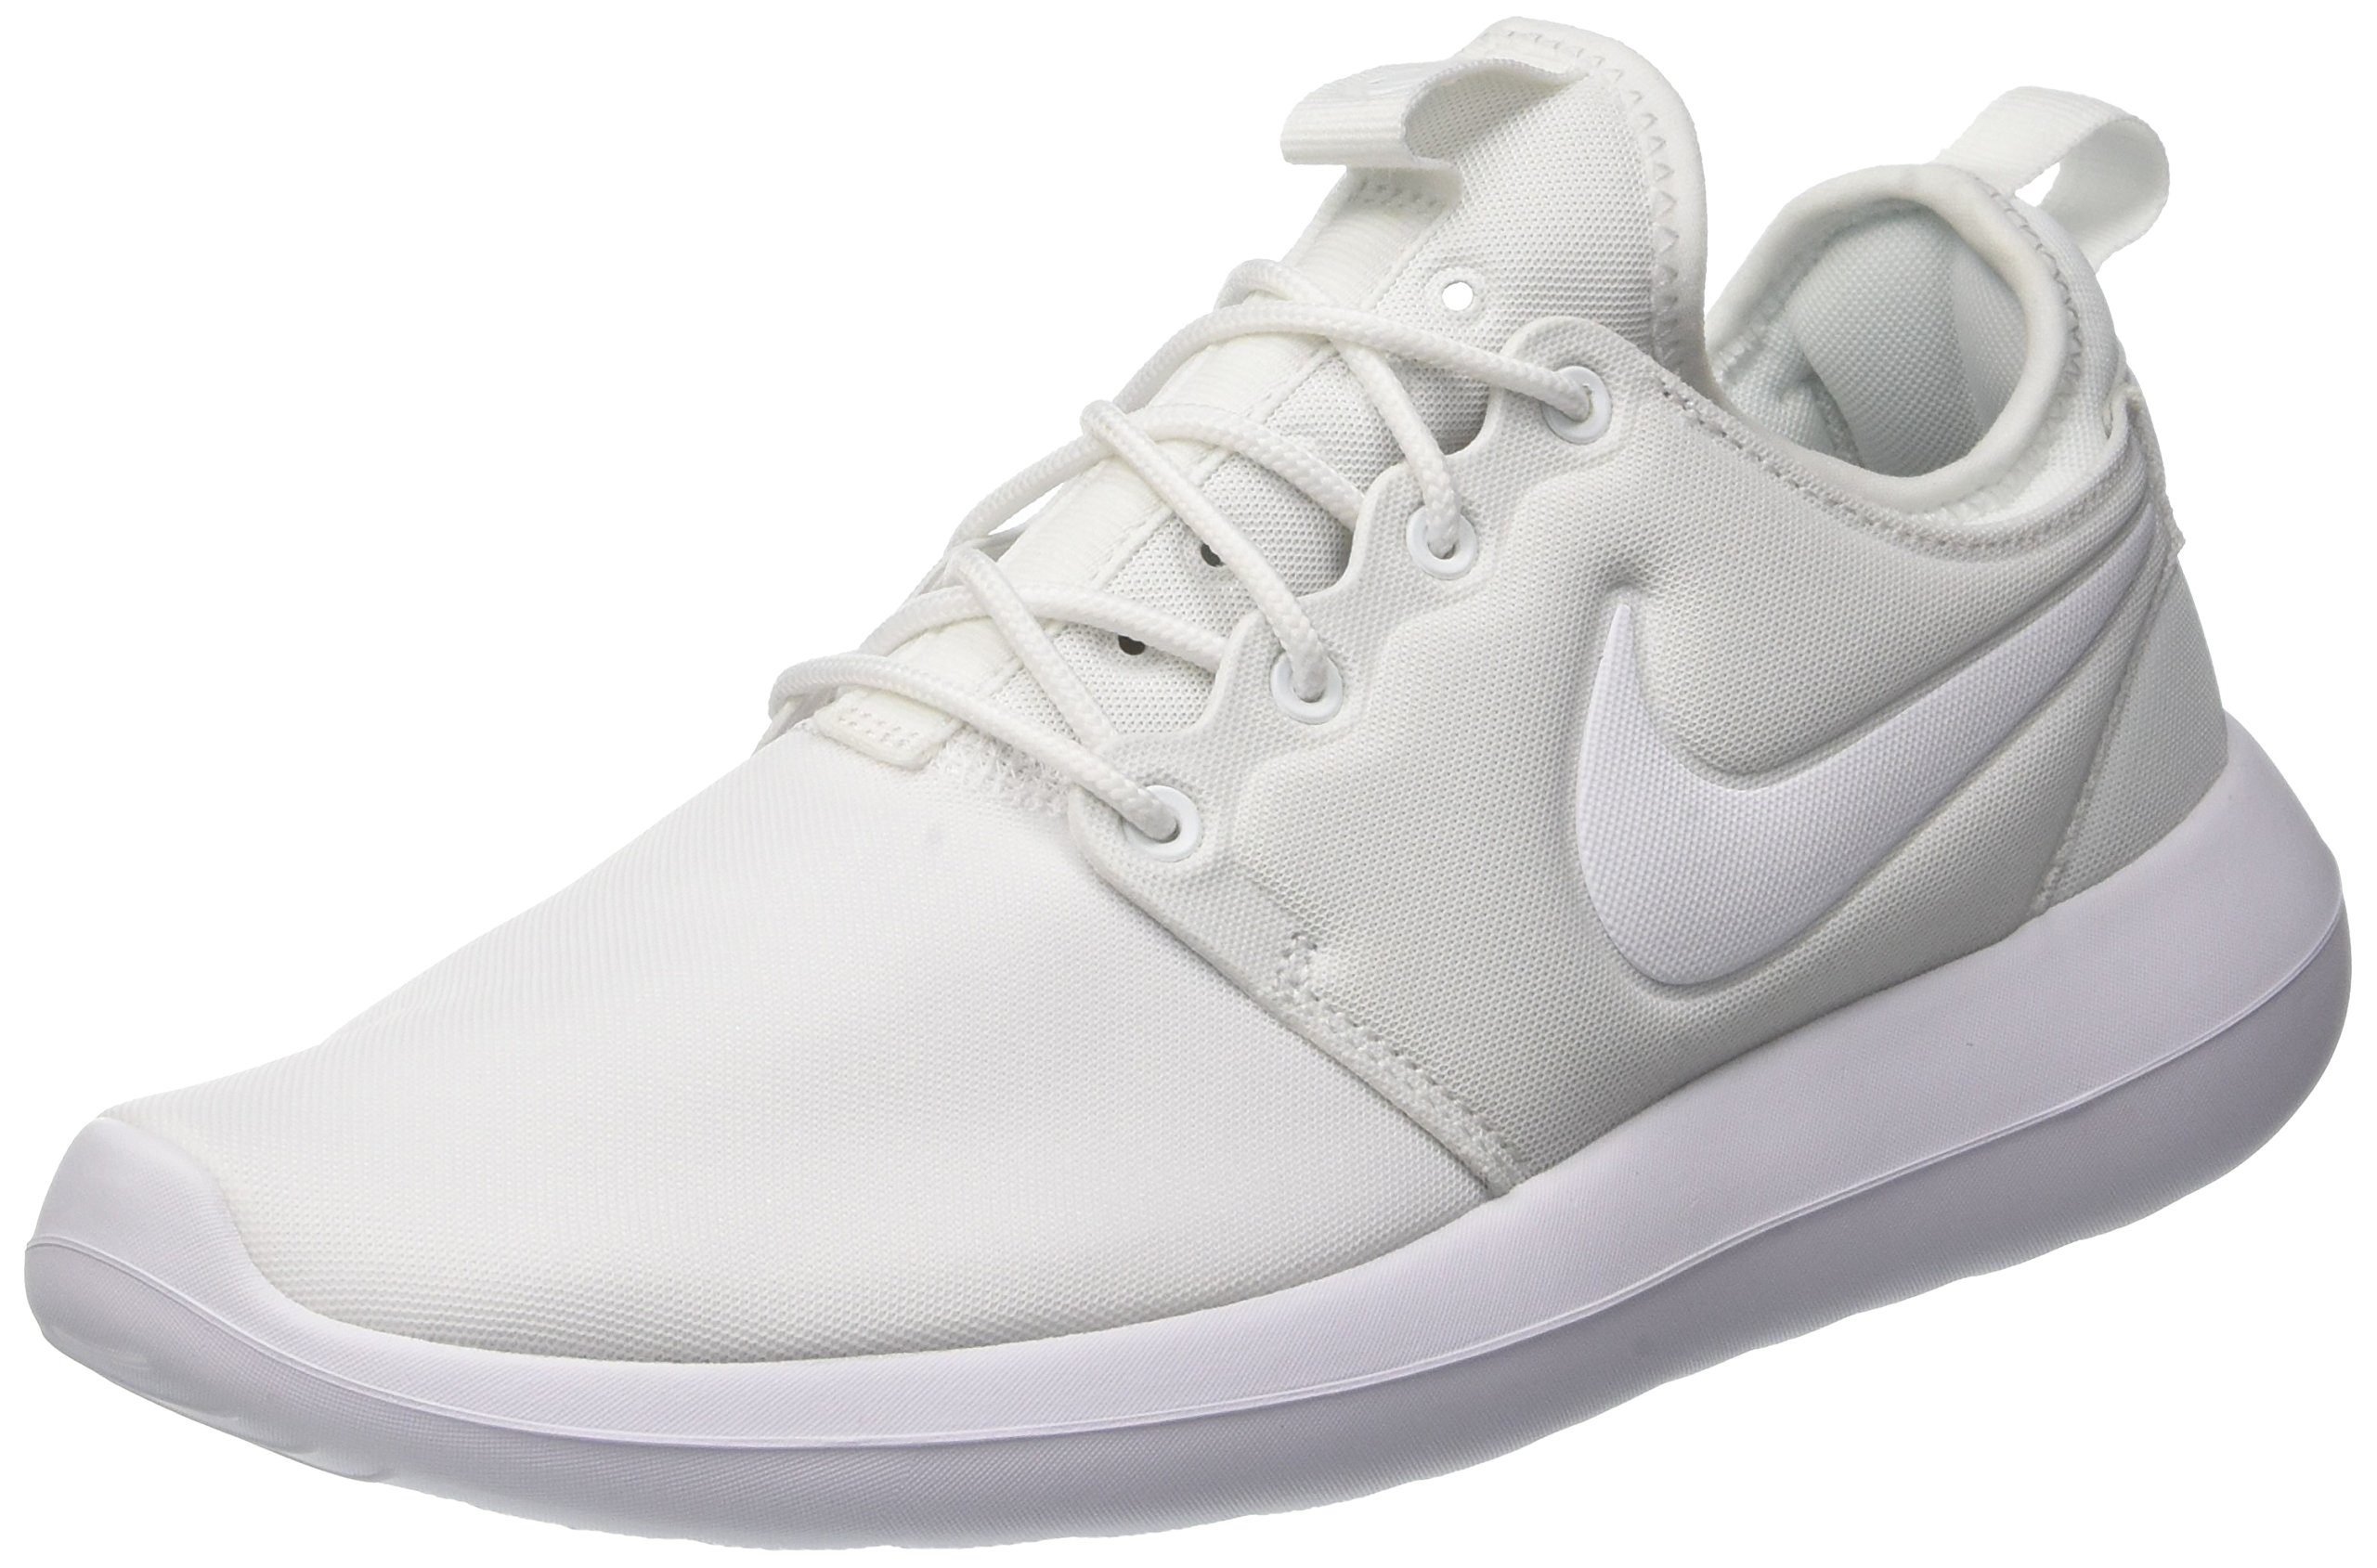 sports shoes 48ddf 10645 Galleon - Nike Womens Roshe Two Low Top Lace Up, White White-Pure Platinum,  Size 7.5